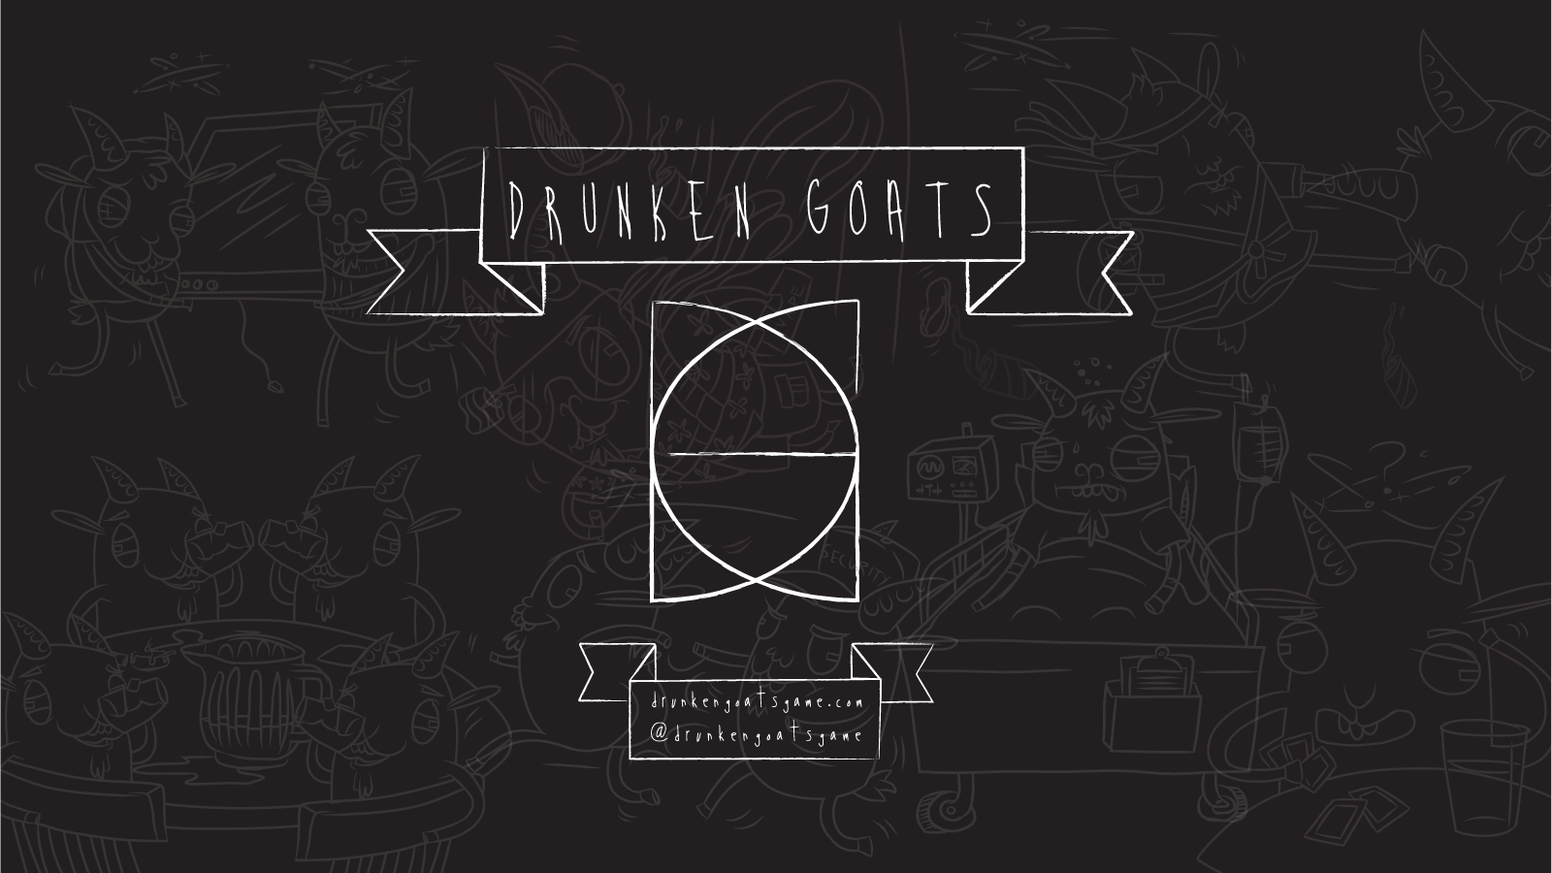 Drunken Goats Card Game by Drunken Goats Game — Kickstarter